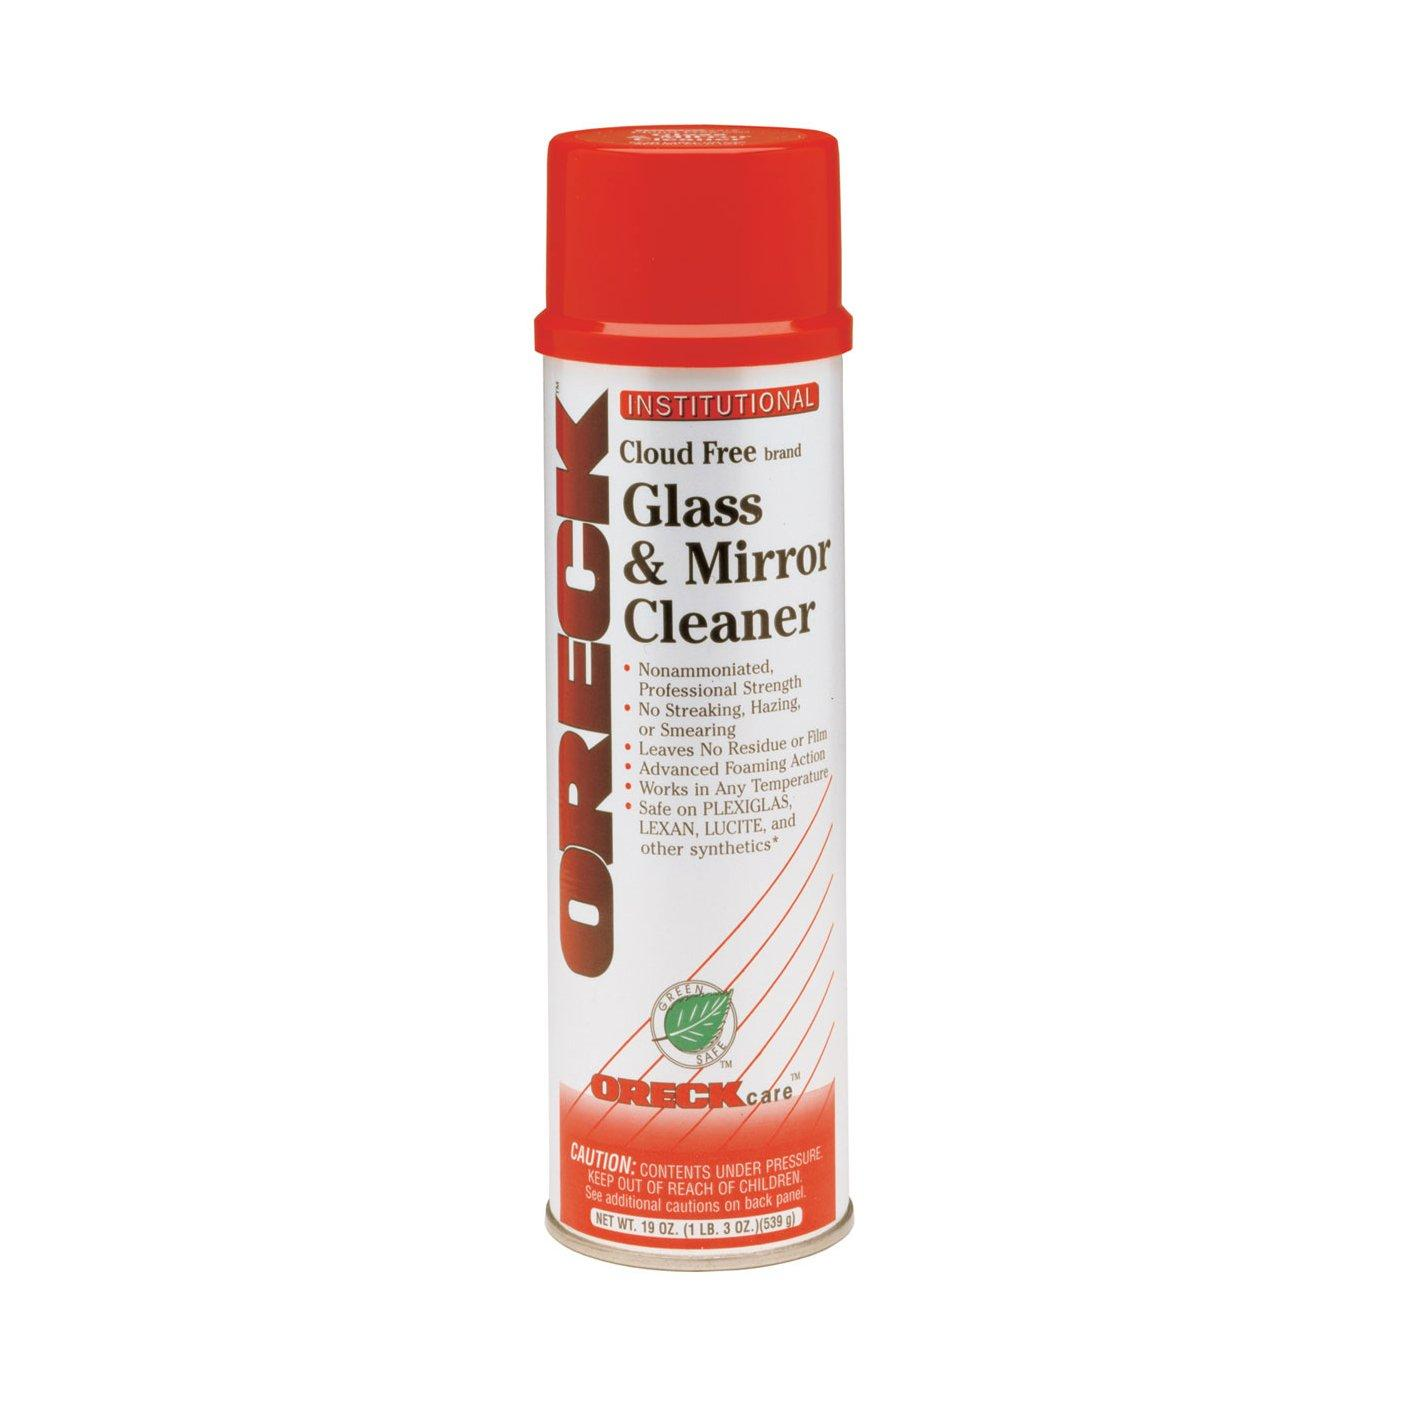 Cloud Free Glass and Mirror Cleaner1